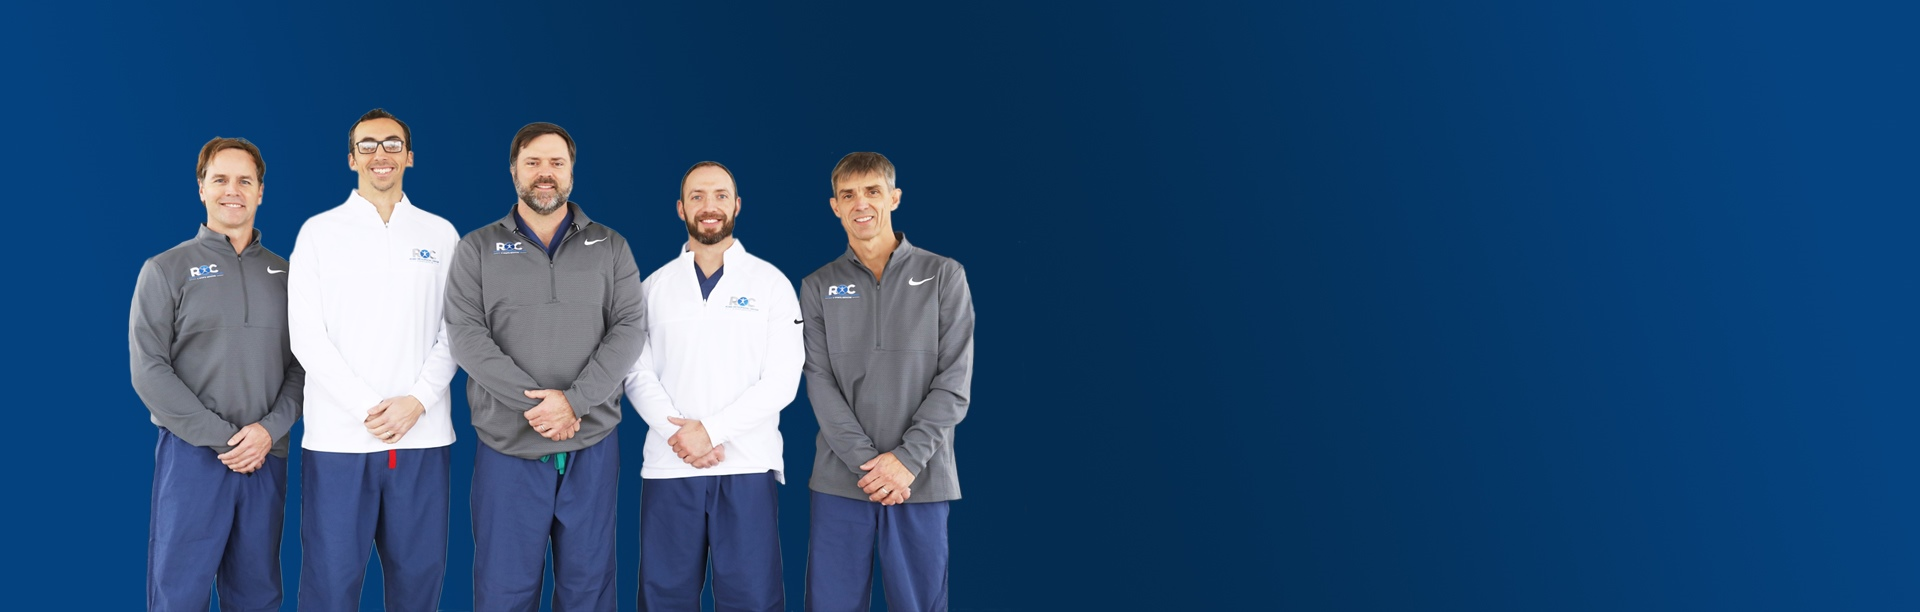 Specialized Orthopaedic Care